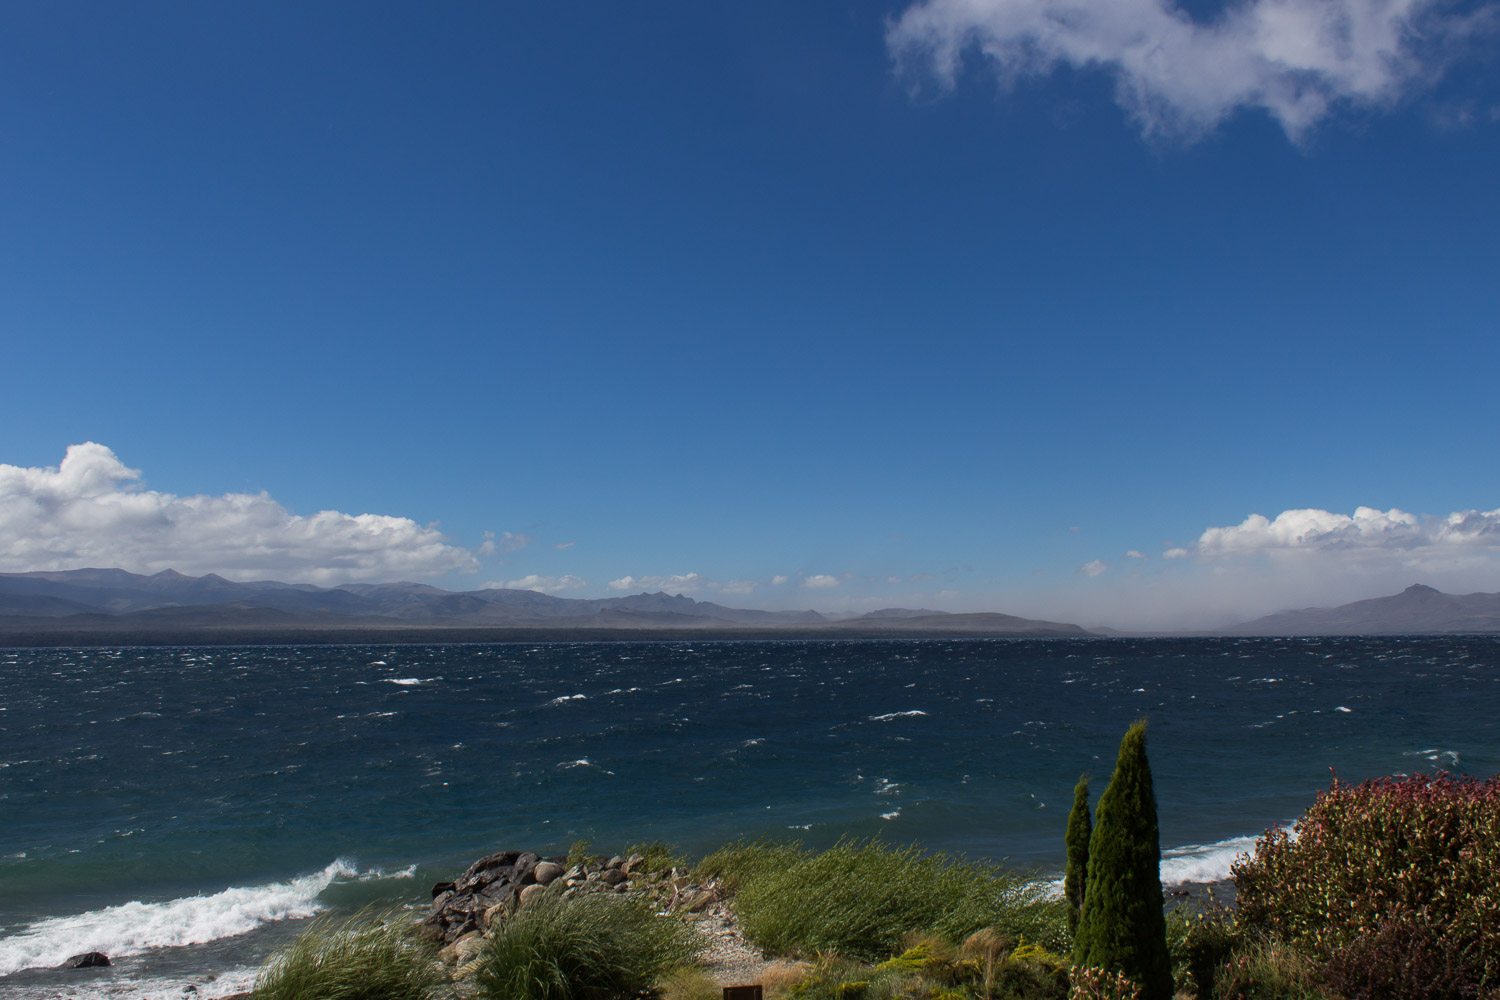 Bariloche on a windy day